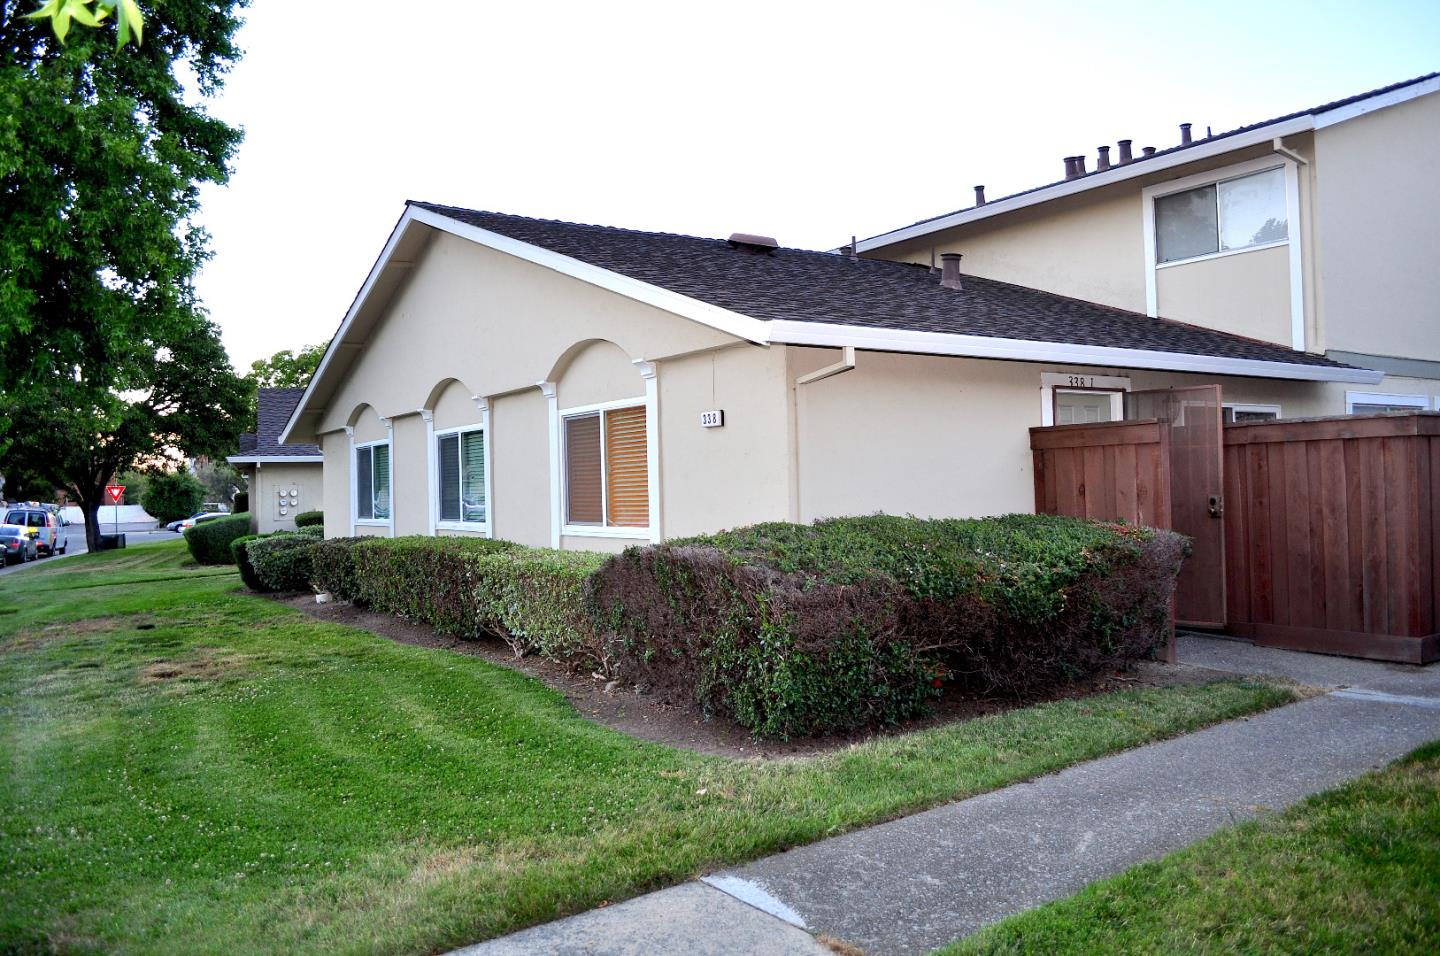 Additional photo for property listing at 338 San Petra Court  Milpitas, Kalifornien 95035 Vereinigte Staaten